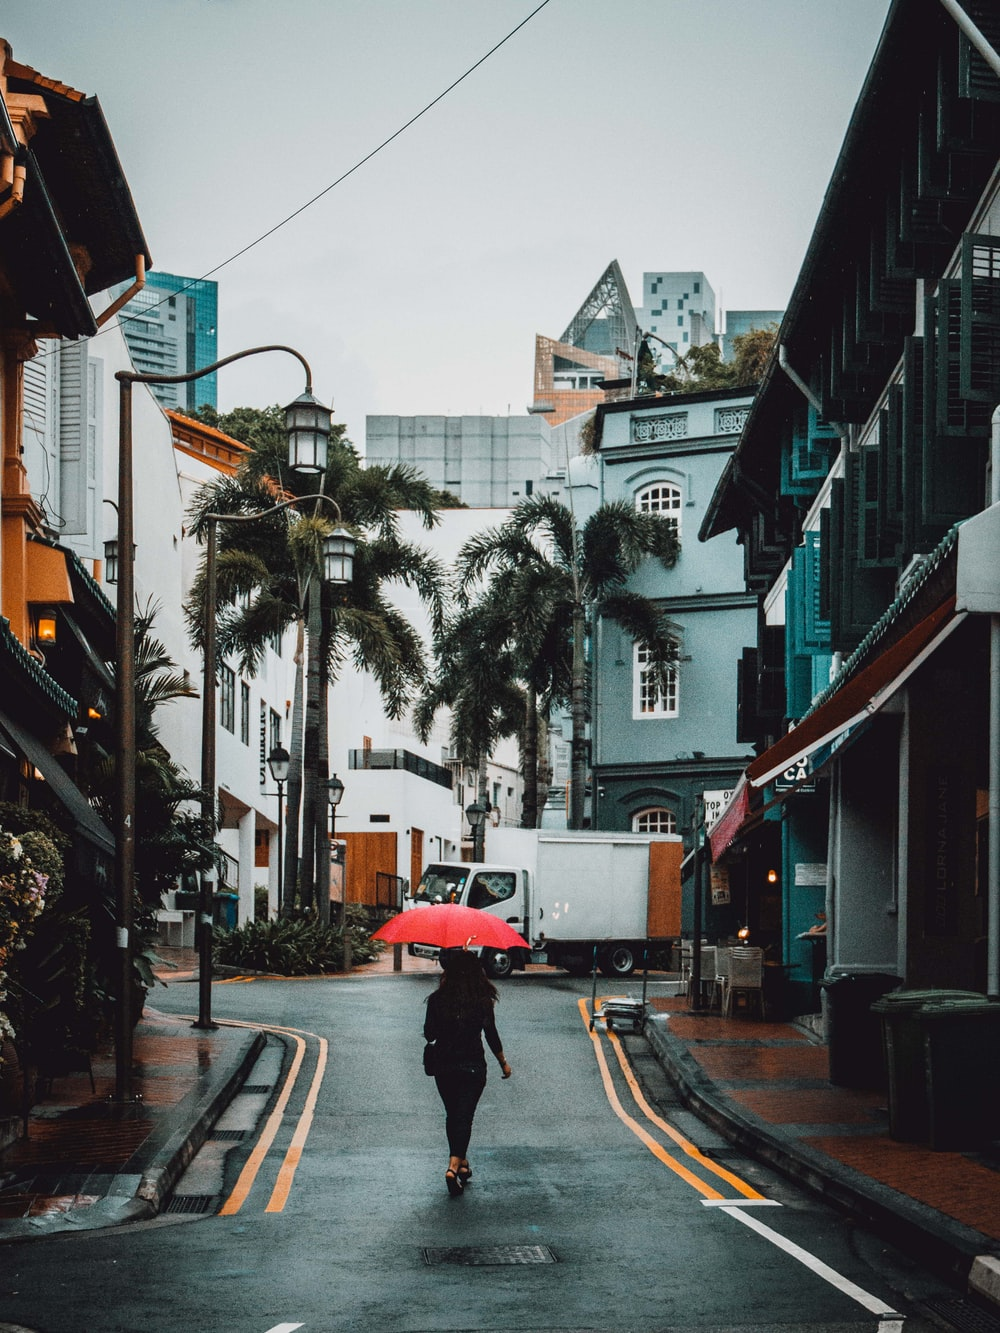 woman holding red umbrella walking on road between buildings at daytime